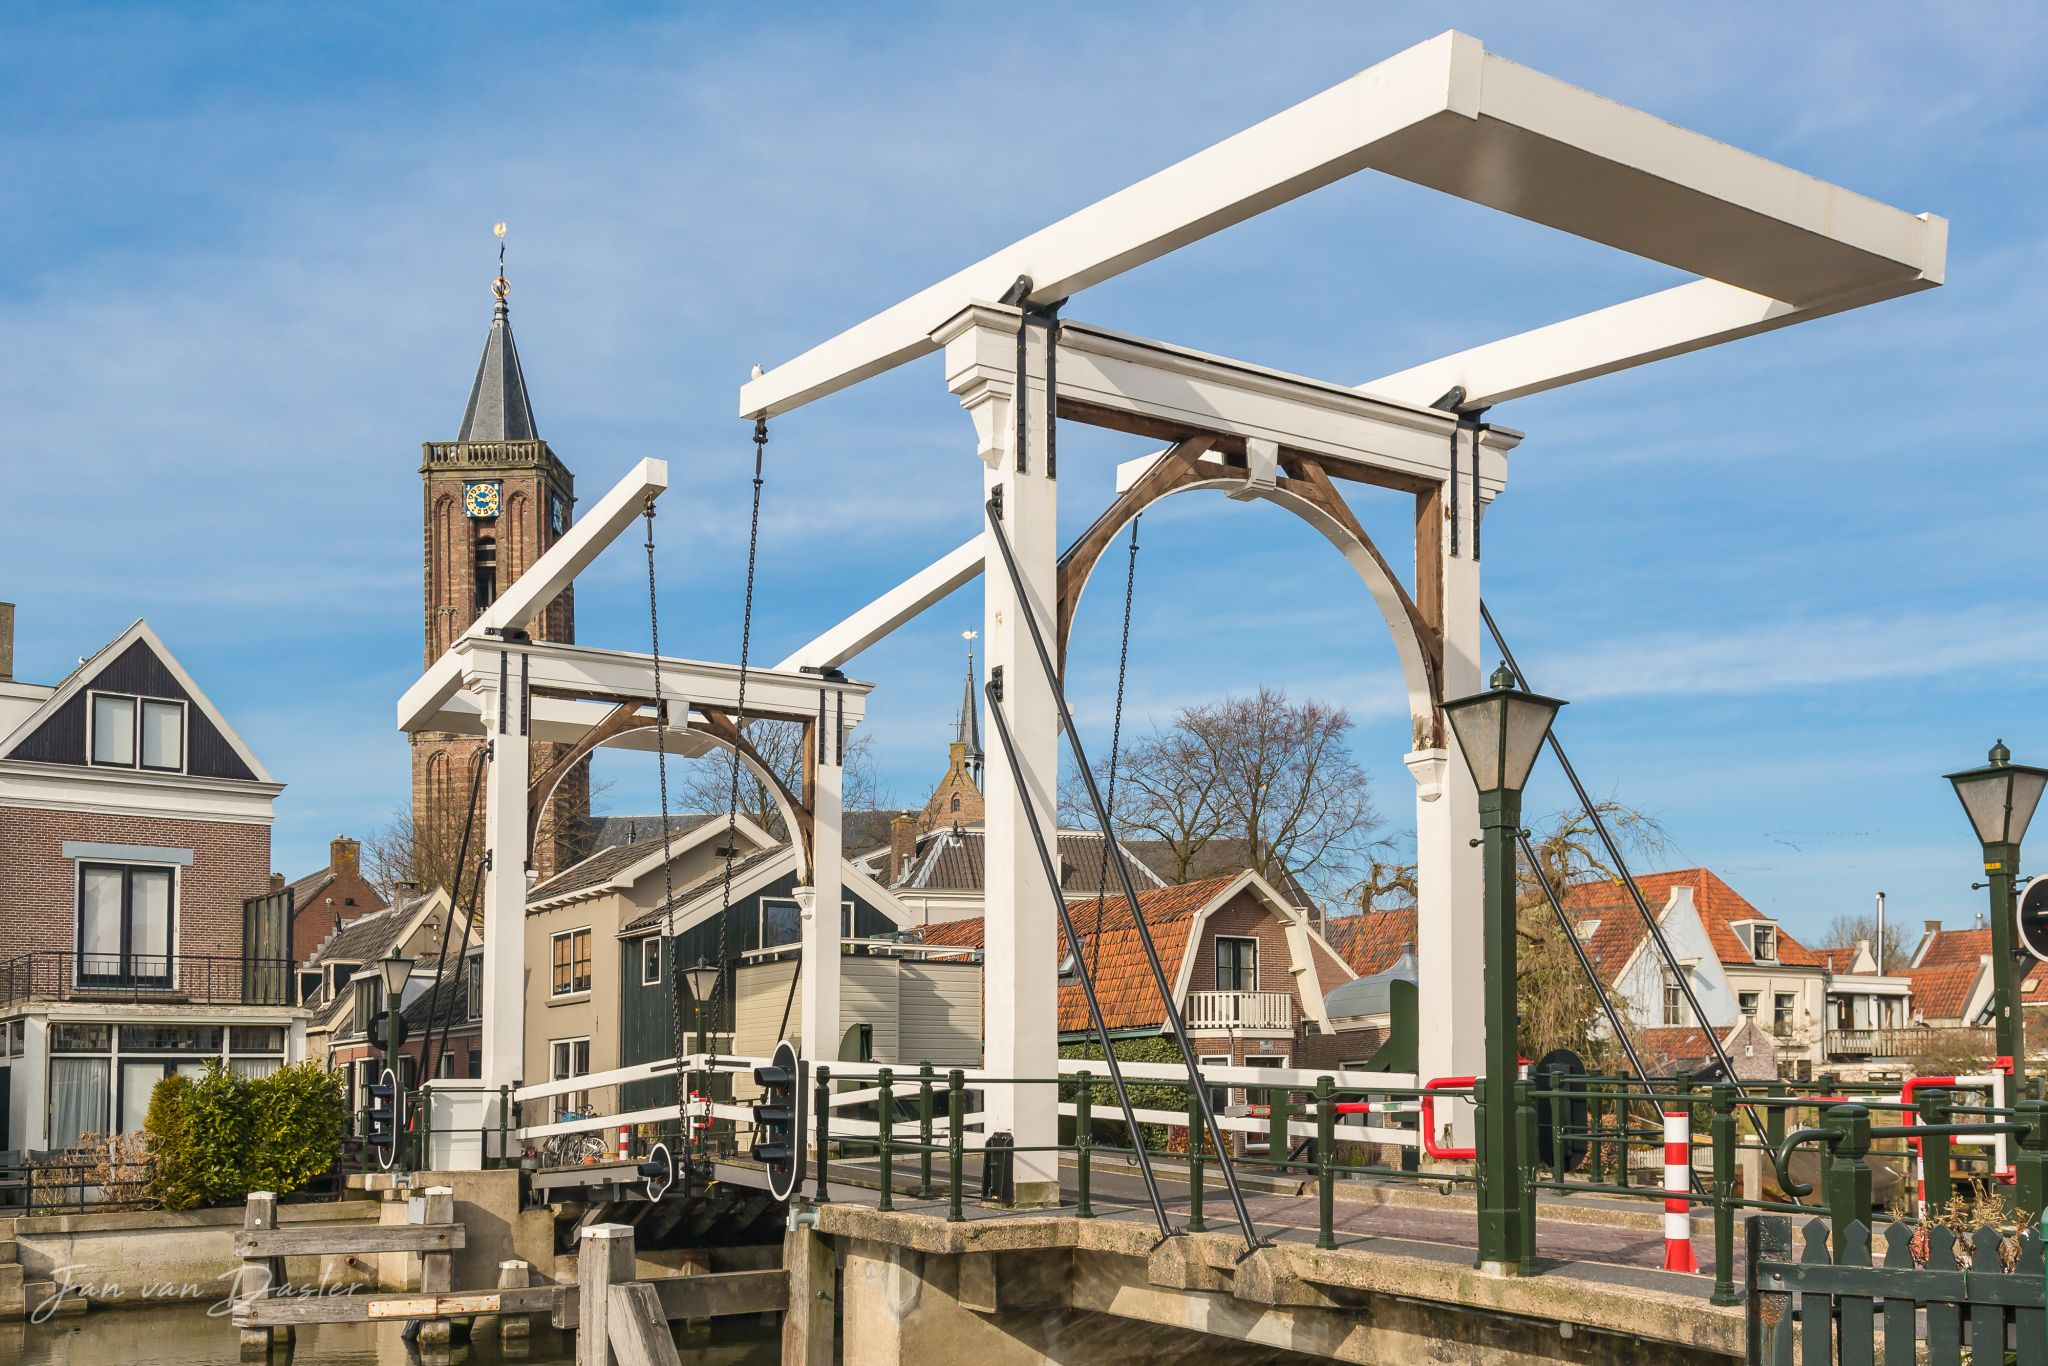 Drawbridge in Loenen aan de Vecht, Netherlands